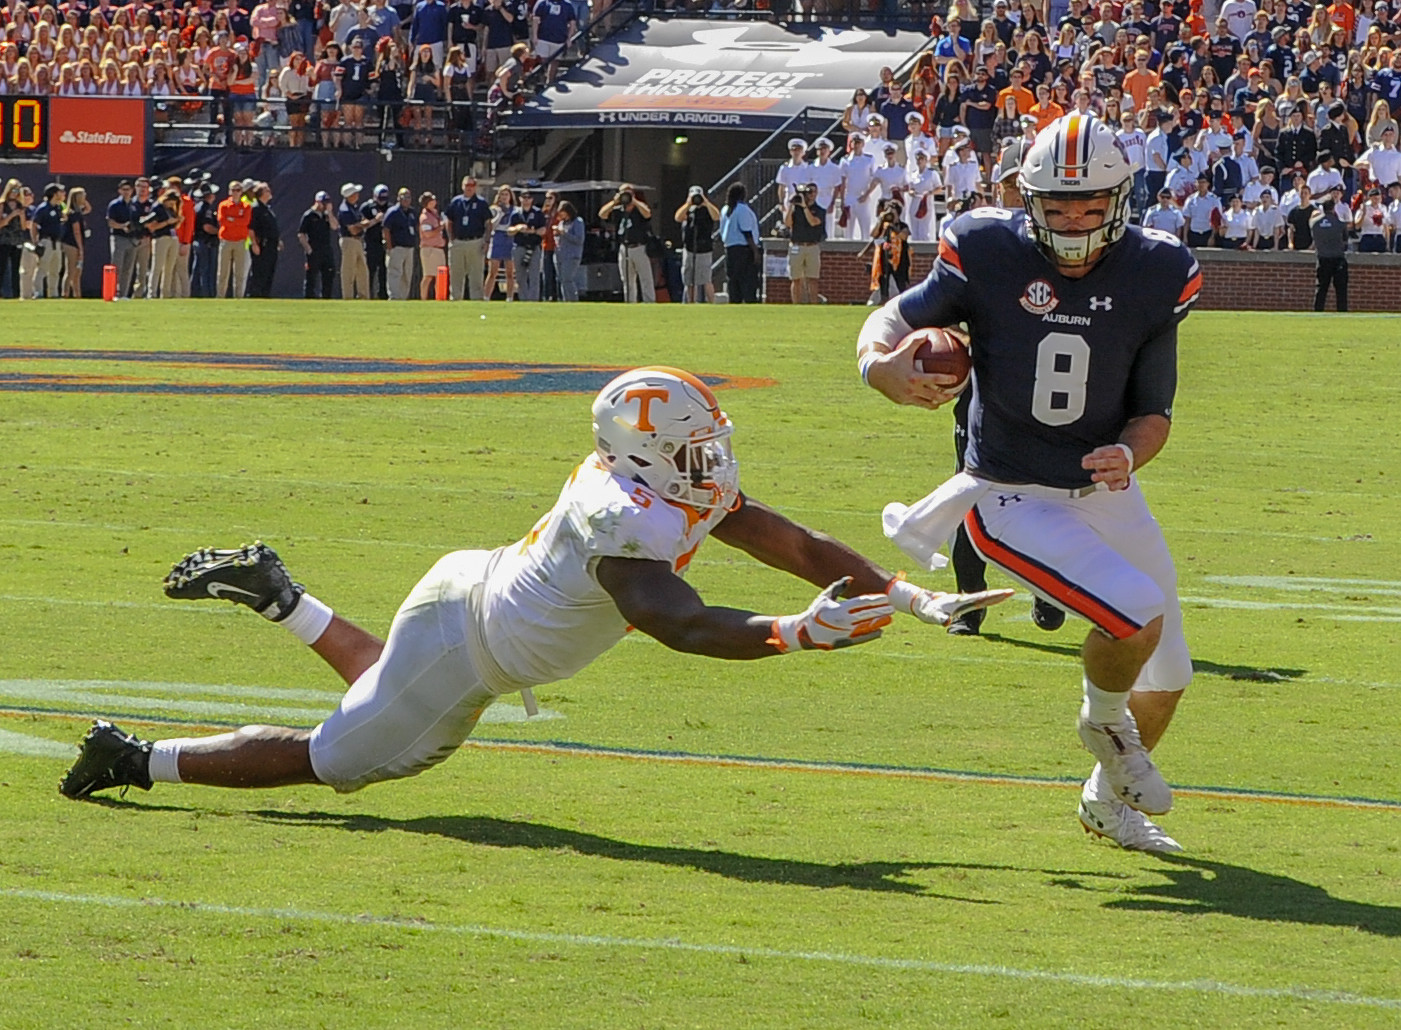 Tennessee Volunteers defensive lineman Kyle Phillips (5) dives for Auburn Tigers quarterback Jarrett Stidham (8) during the first half of Saturday's game, at Jordan-Hare Stadium in Auburn, AL. Daily Mountain Eagle -  Jeff Johnsey